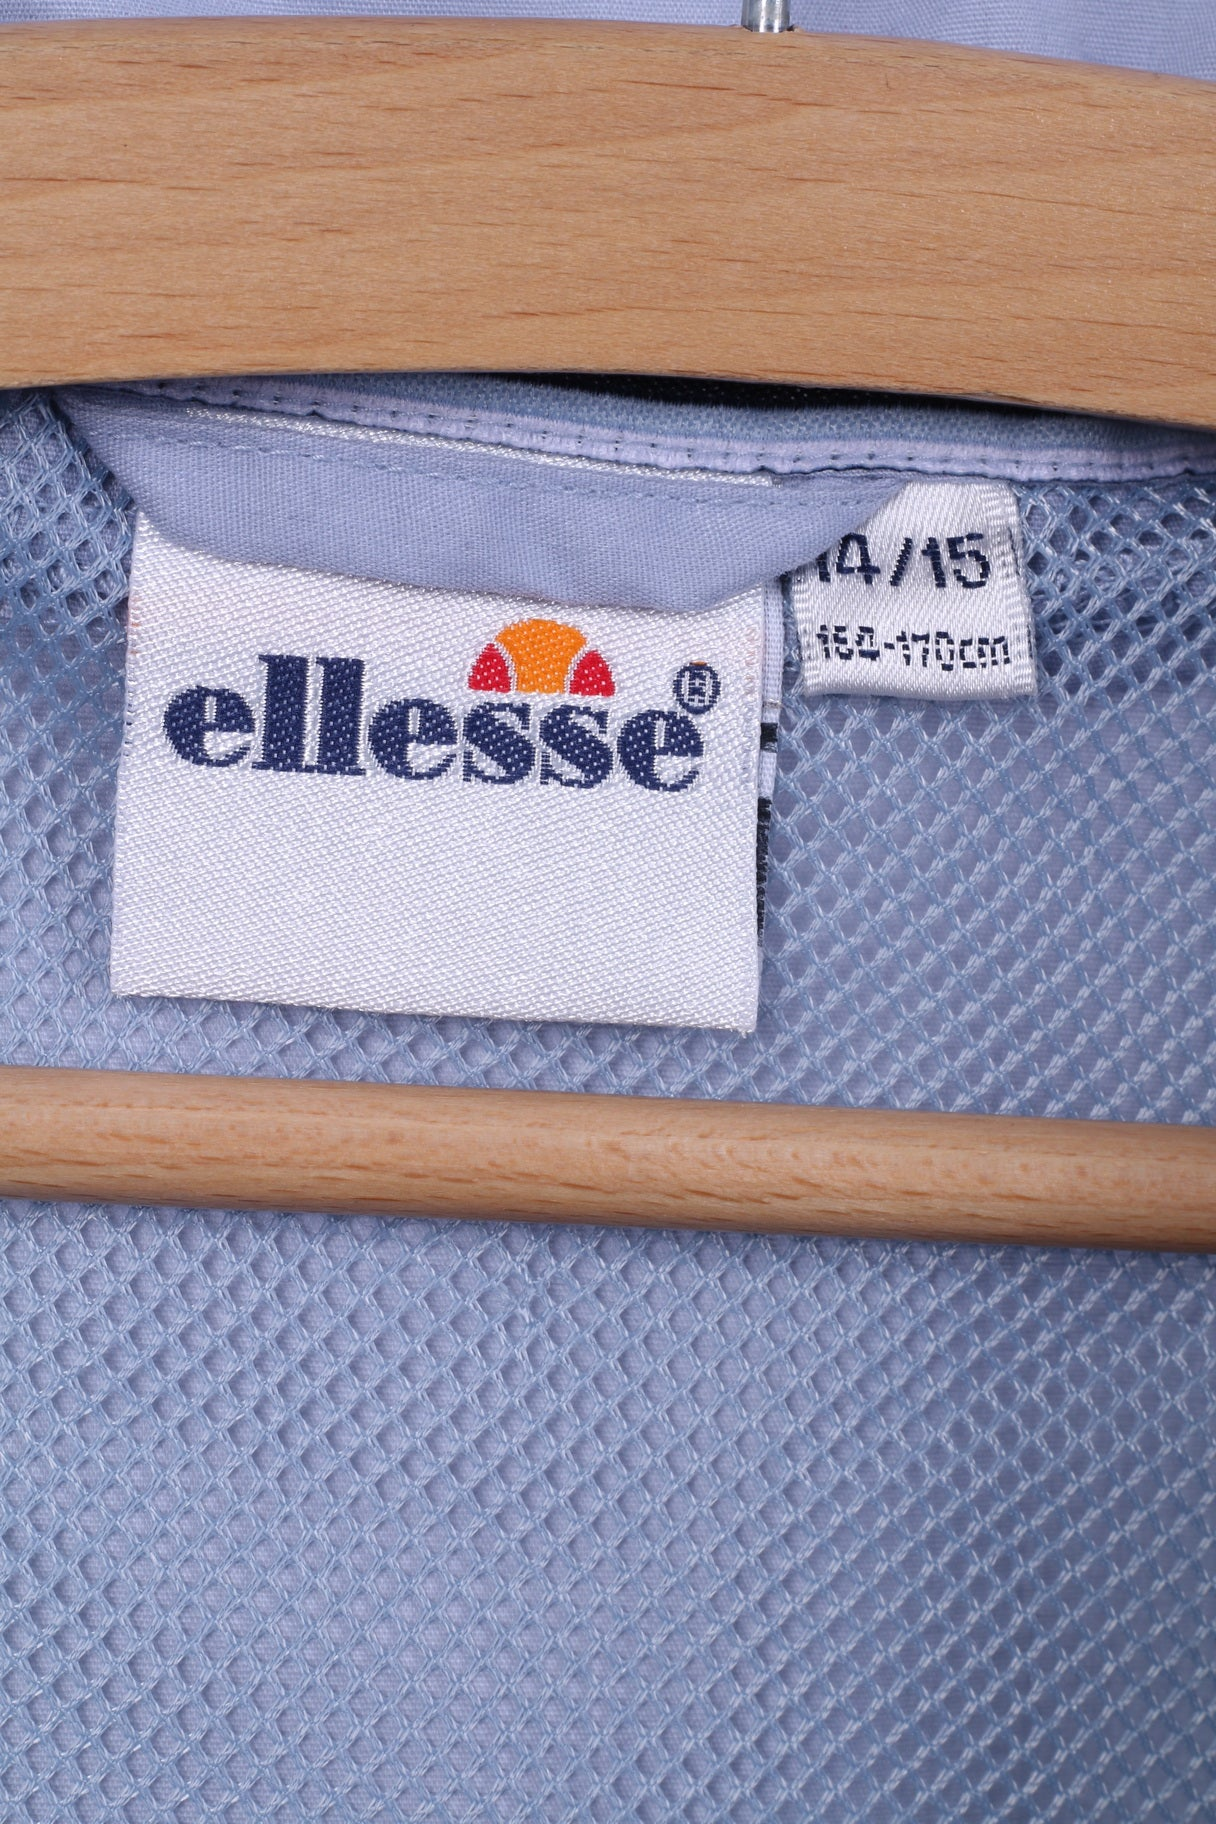 da1aa93b6554 Ellesse Italia Boys 14 -15 Age Jacket Blue Sportswear Cotton Blend ...